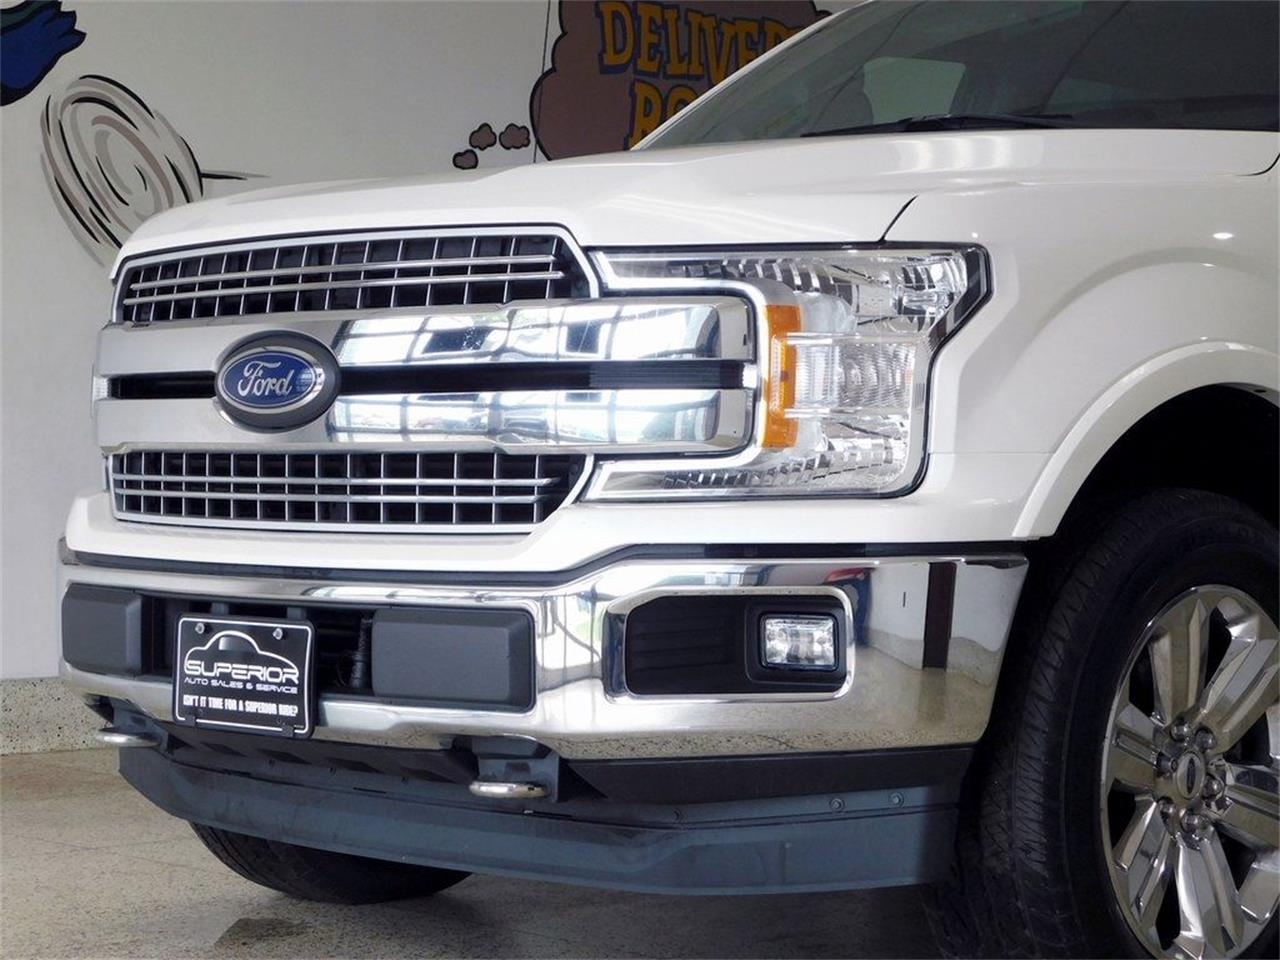 2018 Ford F150 (CC-1361287) for sale in Hamburg, New York